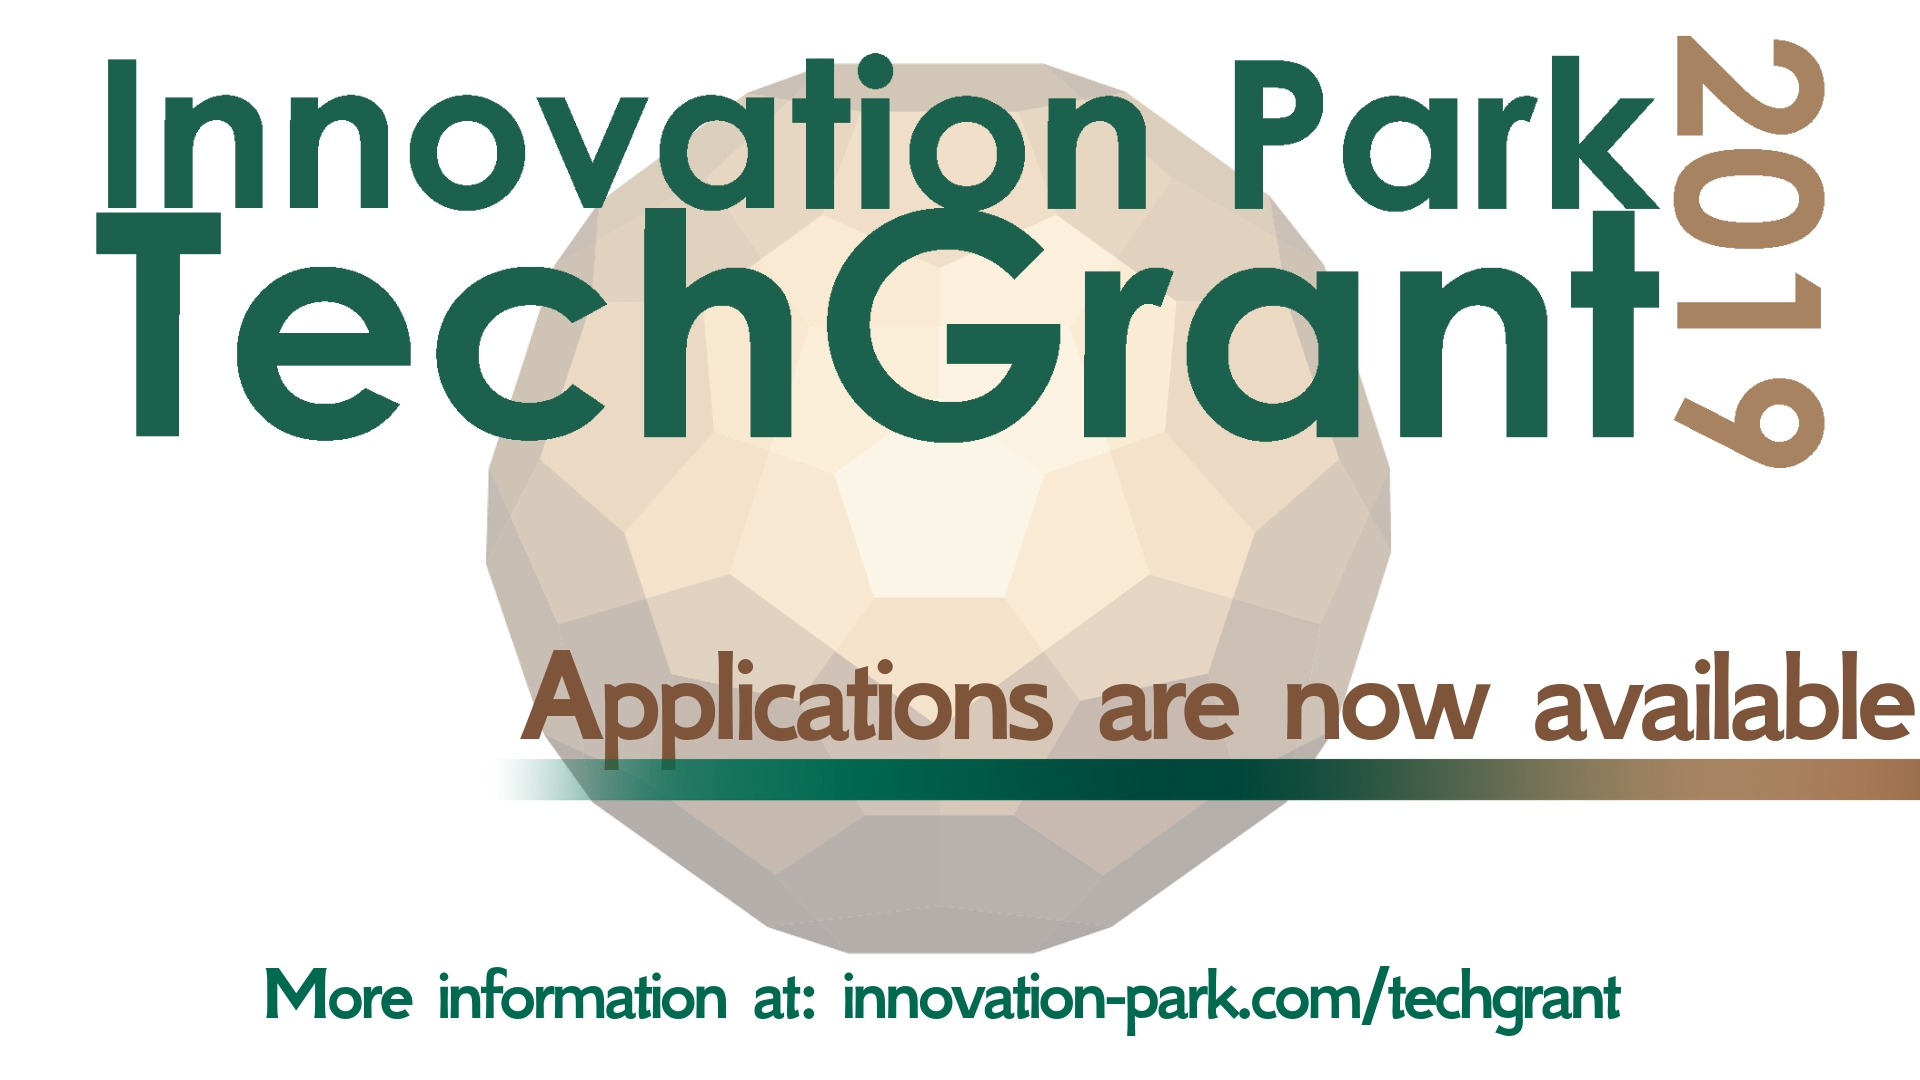 Innovation Park TechGrant 2019 Applications now available